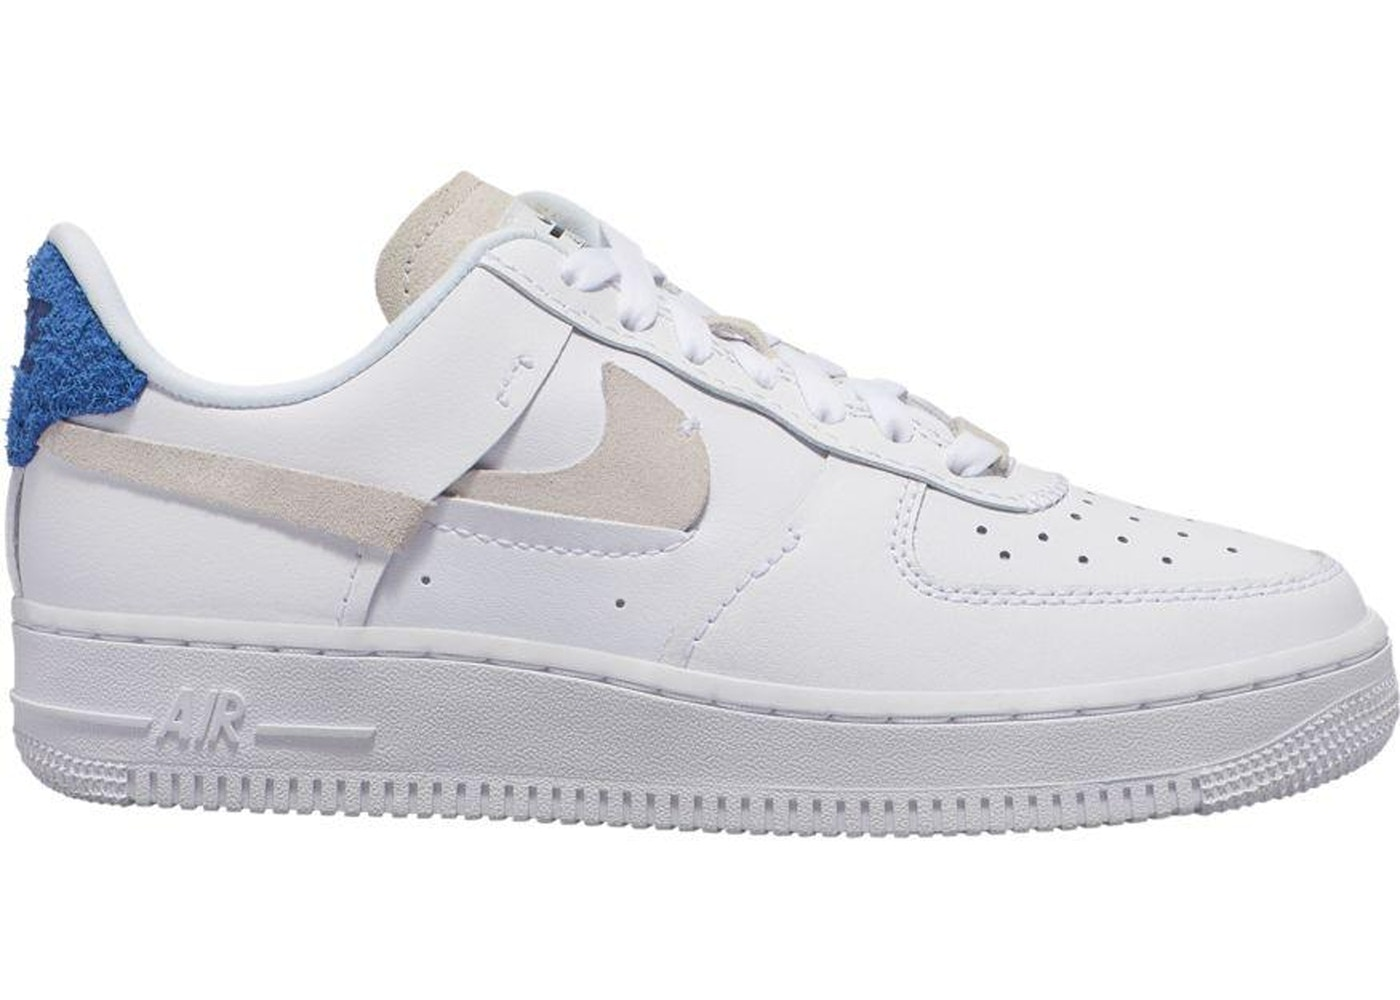 air force 1 lx